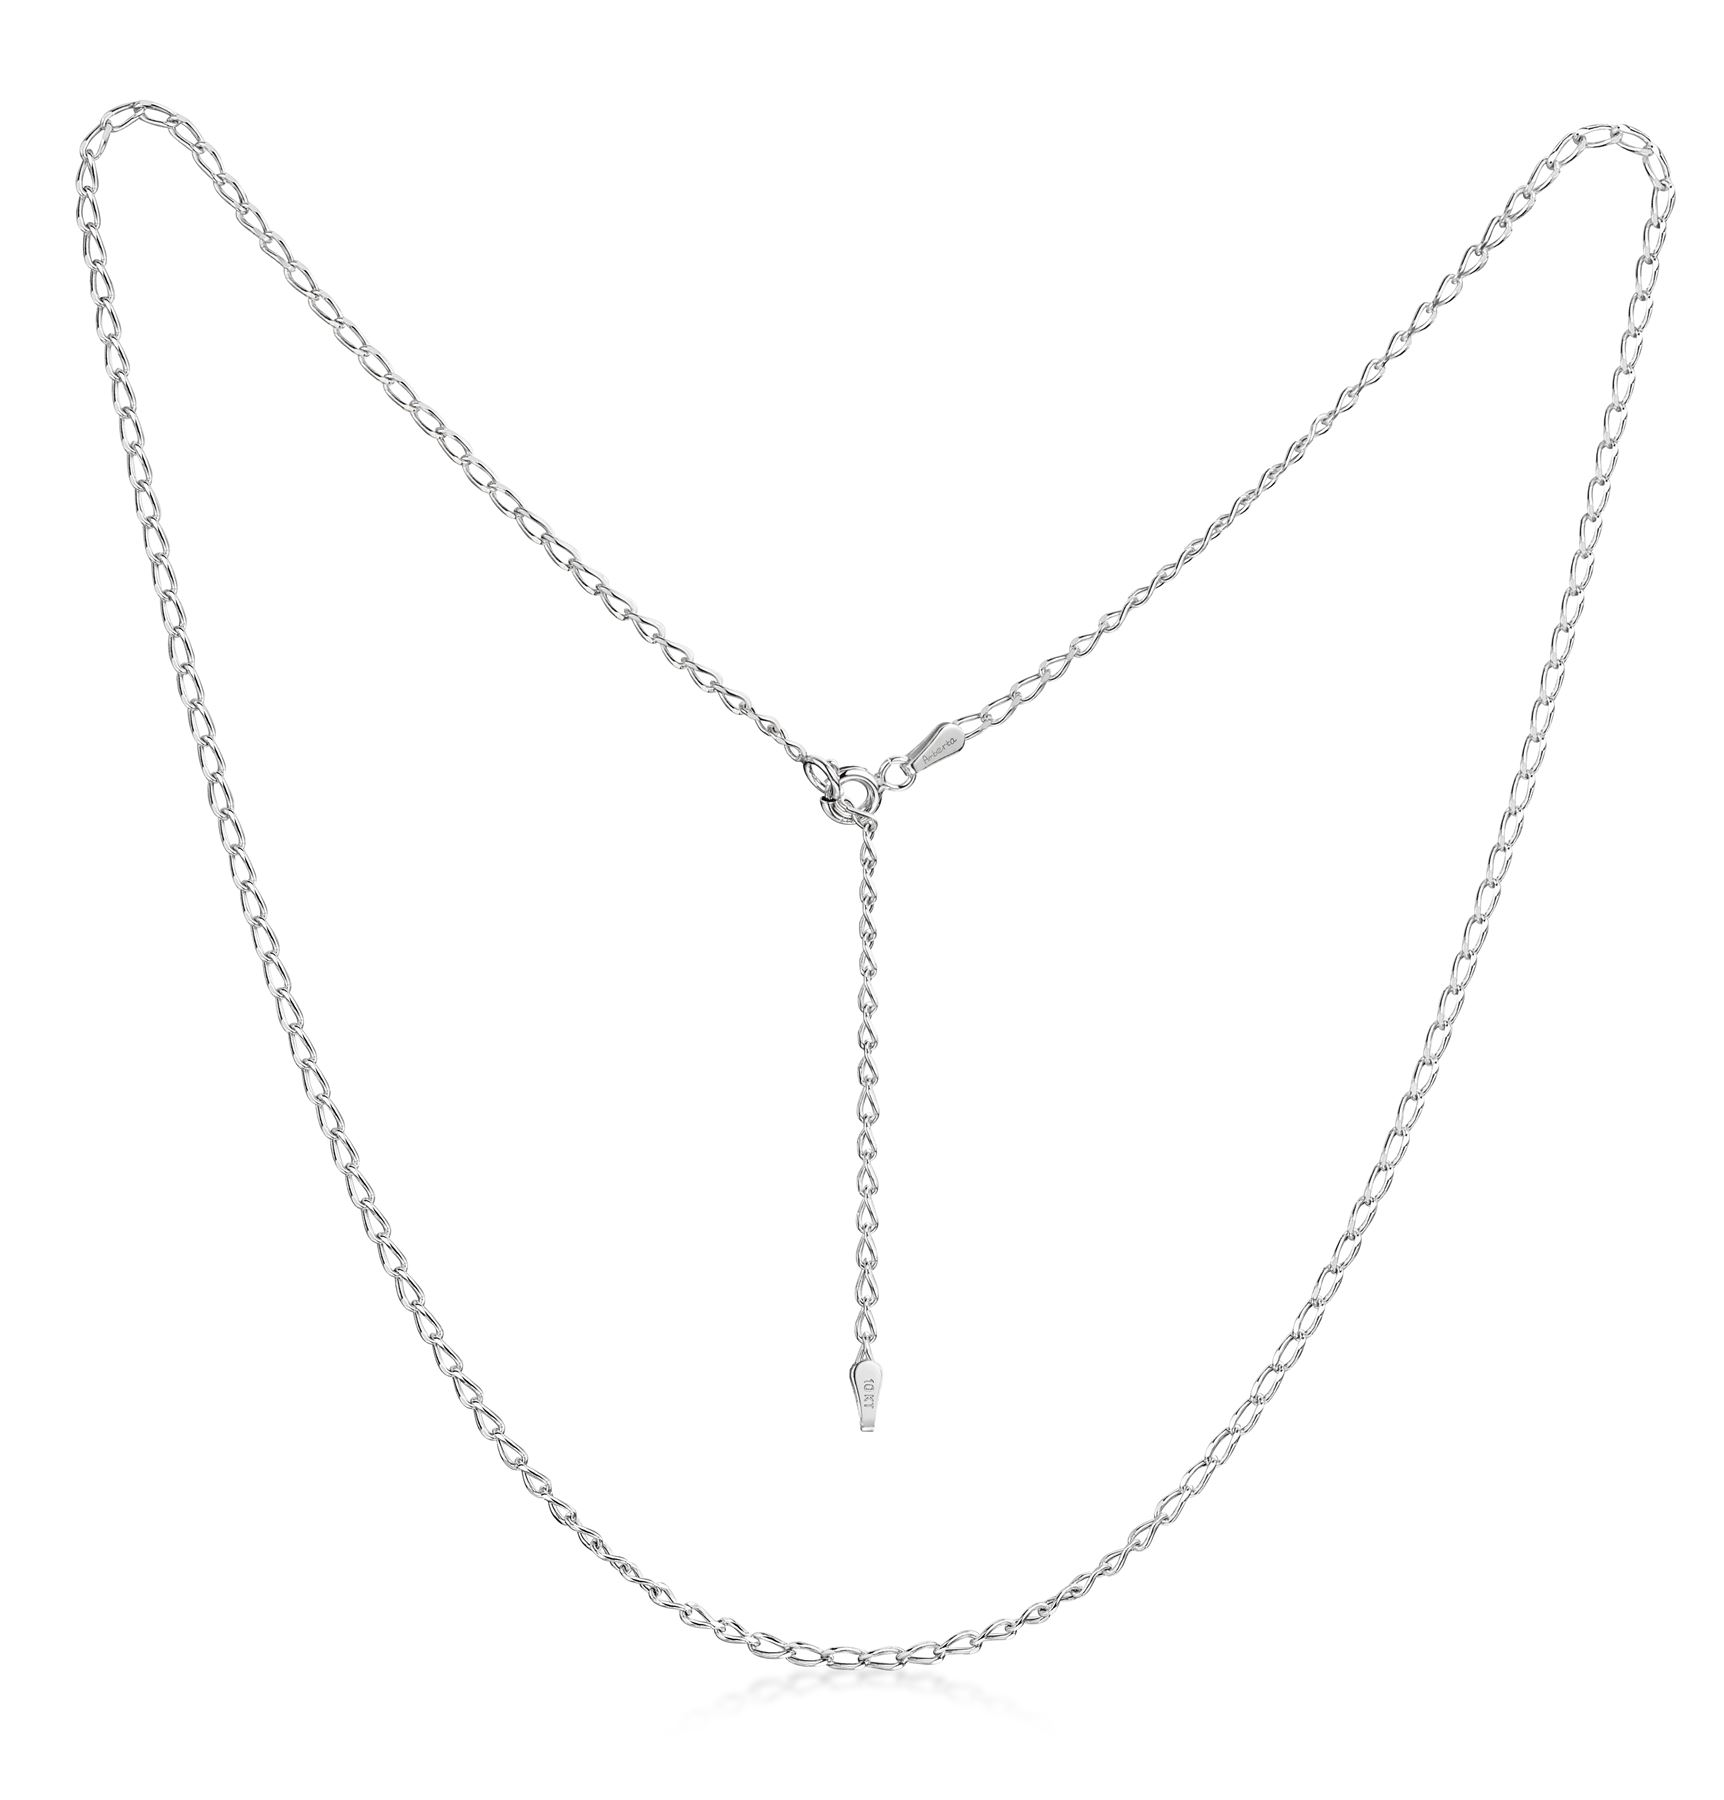 Amberta-Genuine-Solid-10k-Gold-Chain-Adjustable-Necklace-for-Women-and-Men thumbnail 4